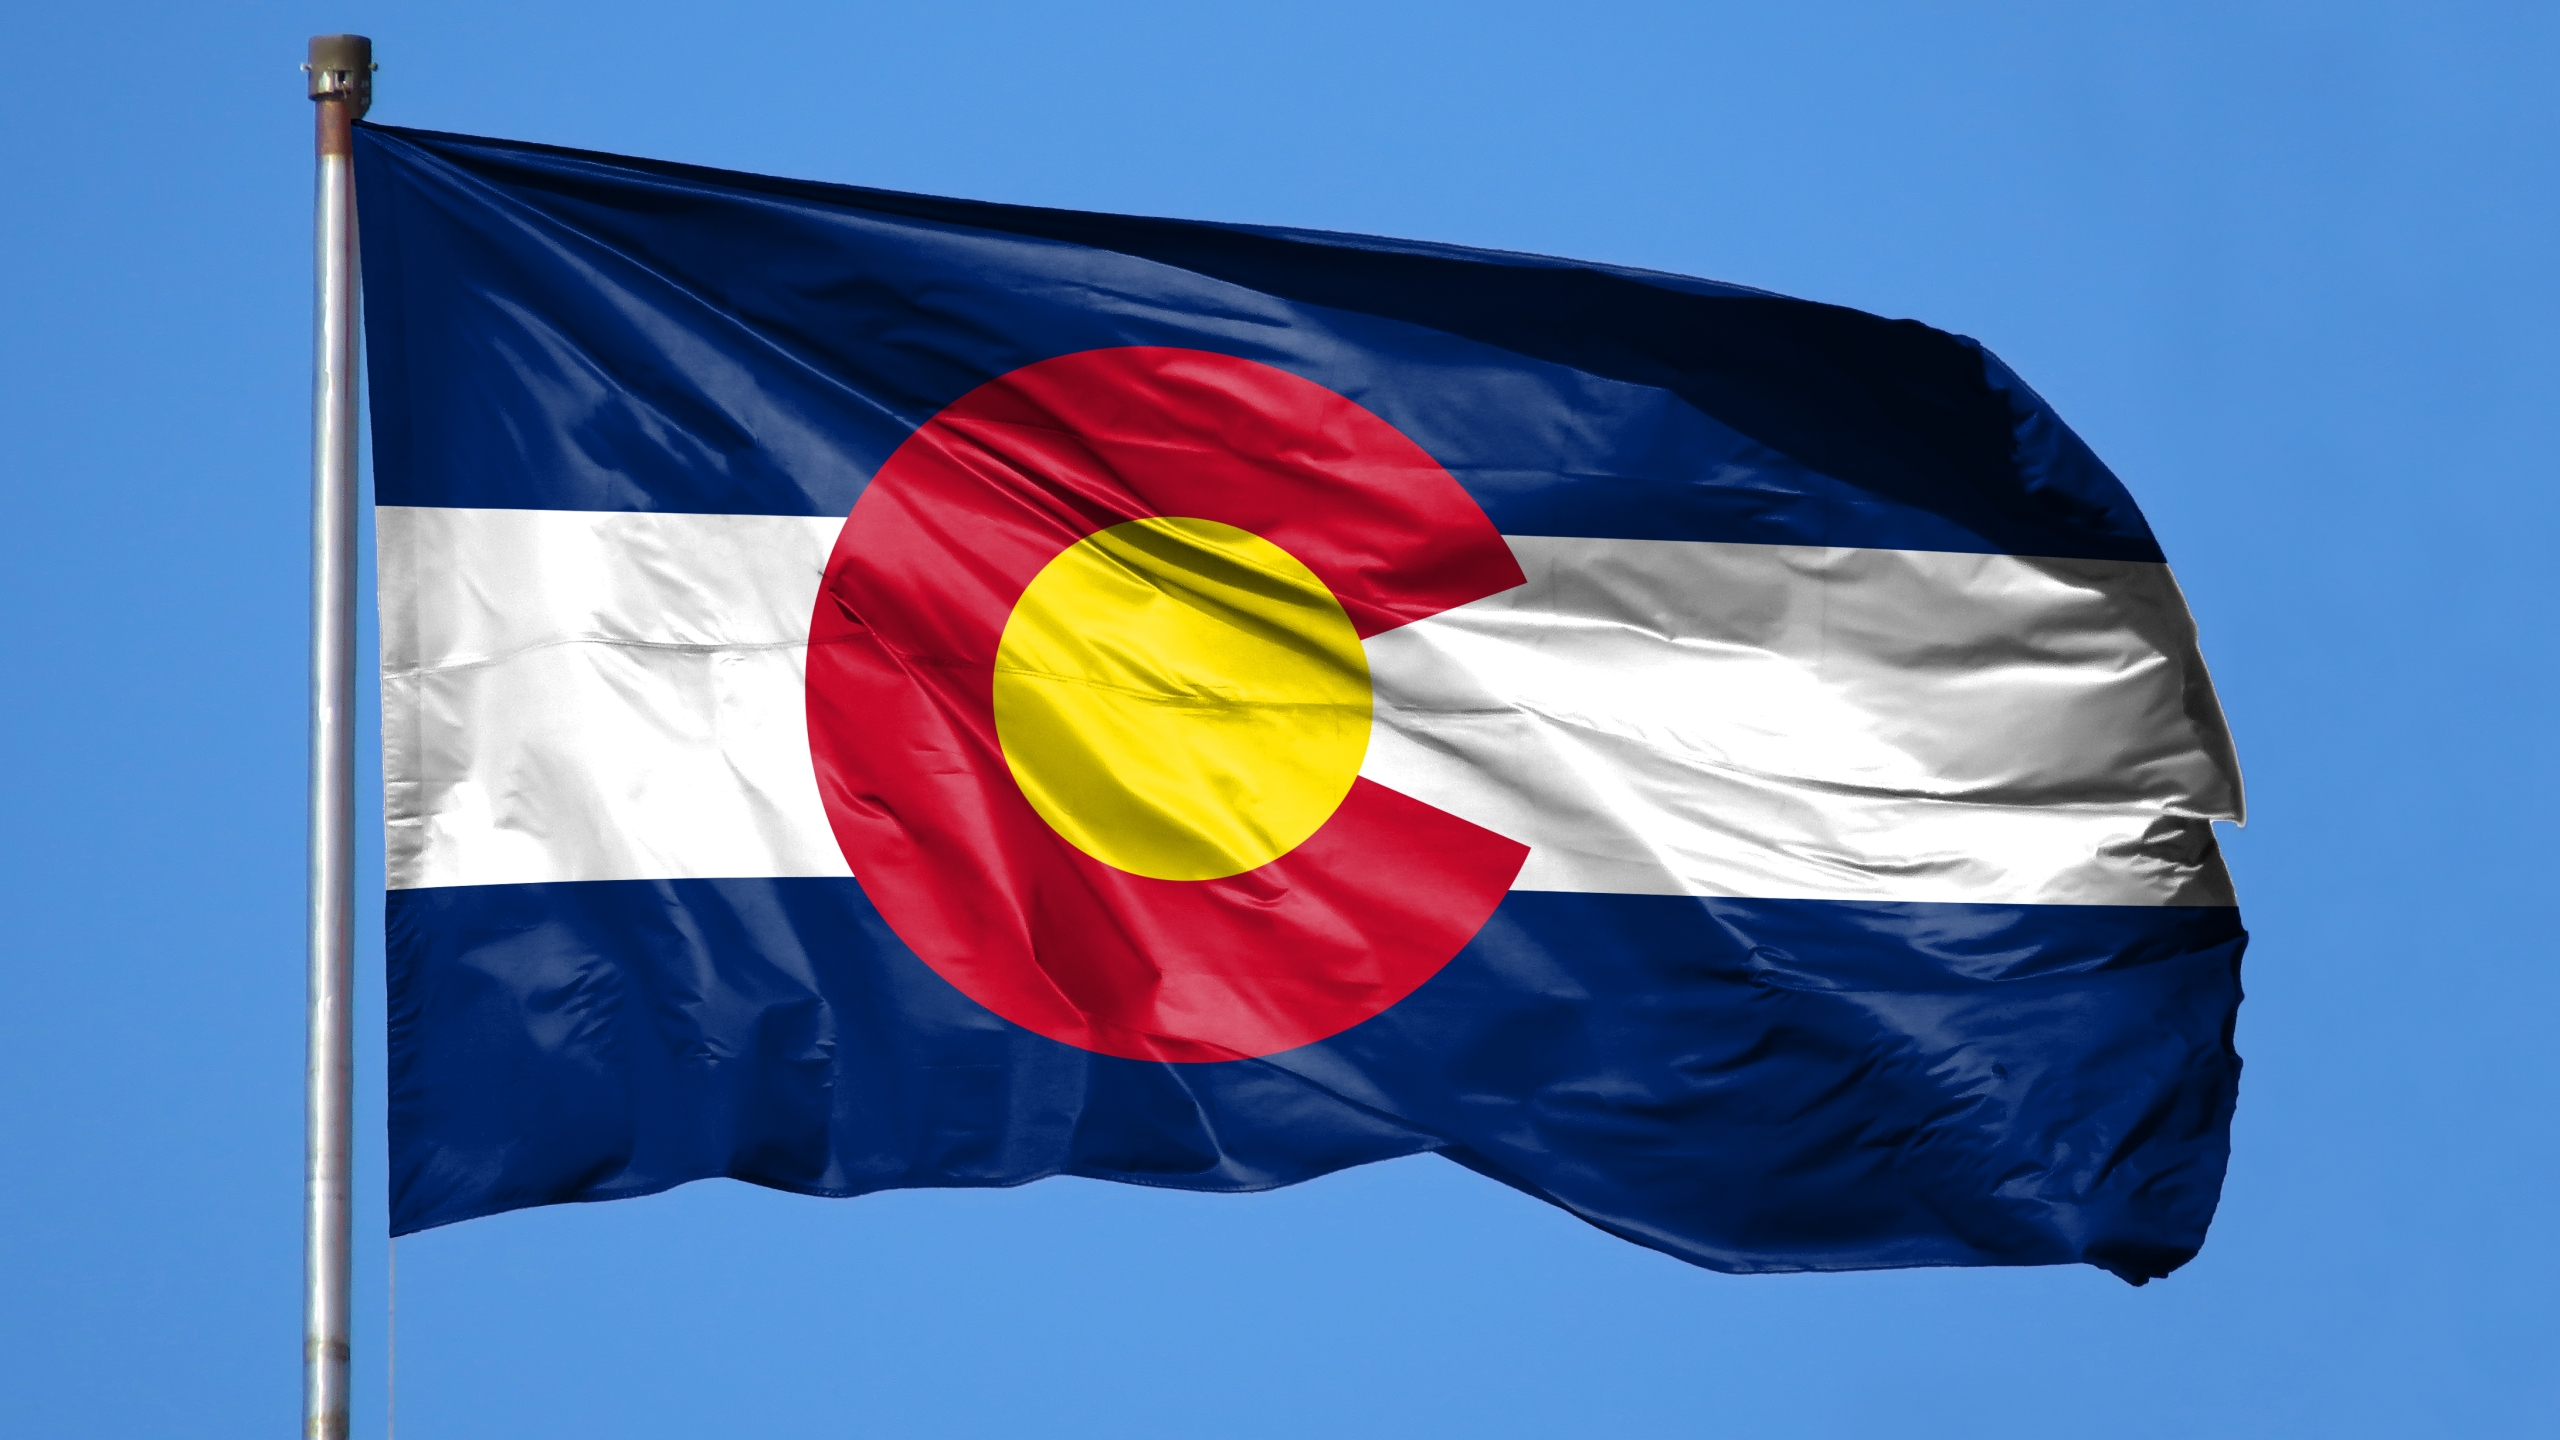 National flag State of Colorado on a flagpole